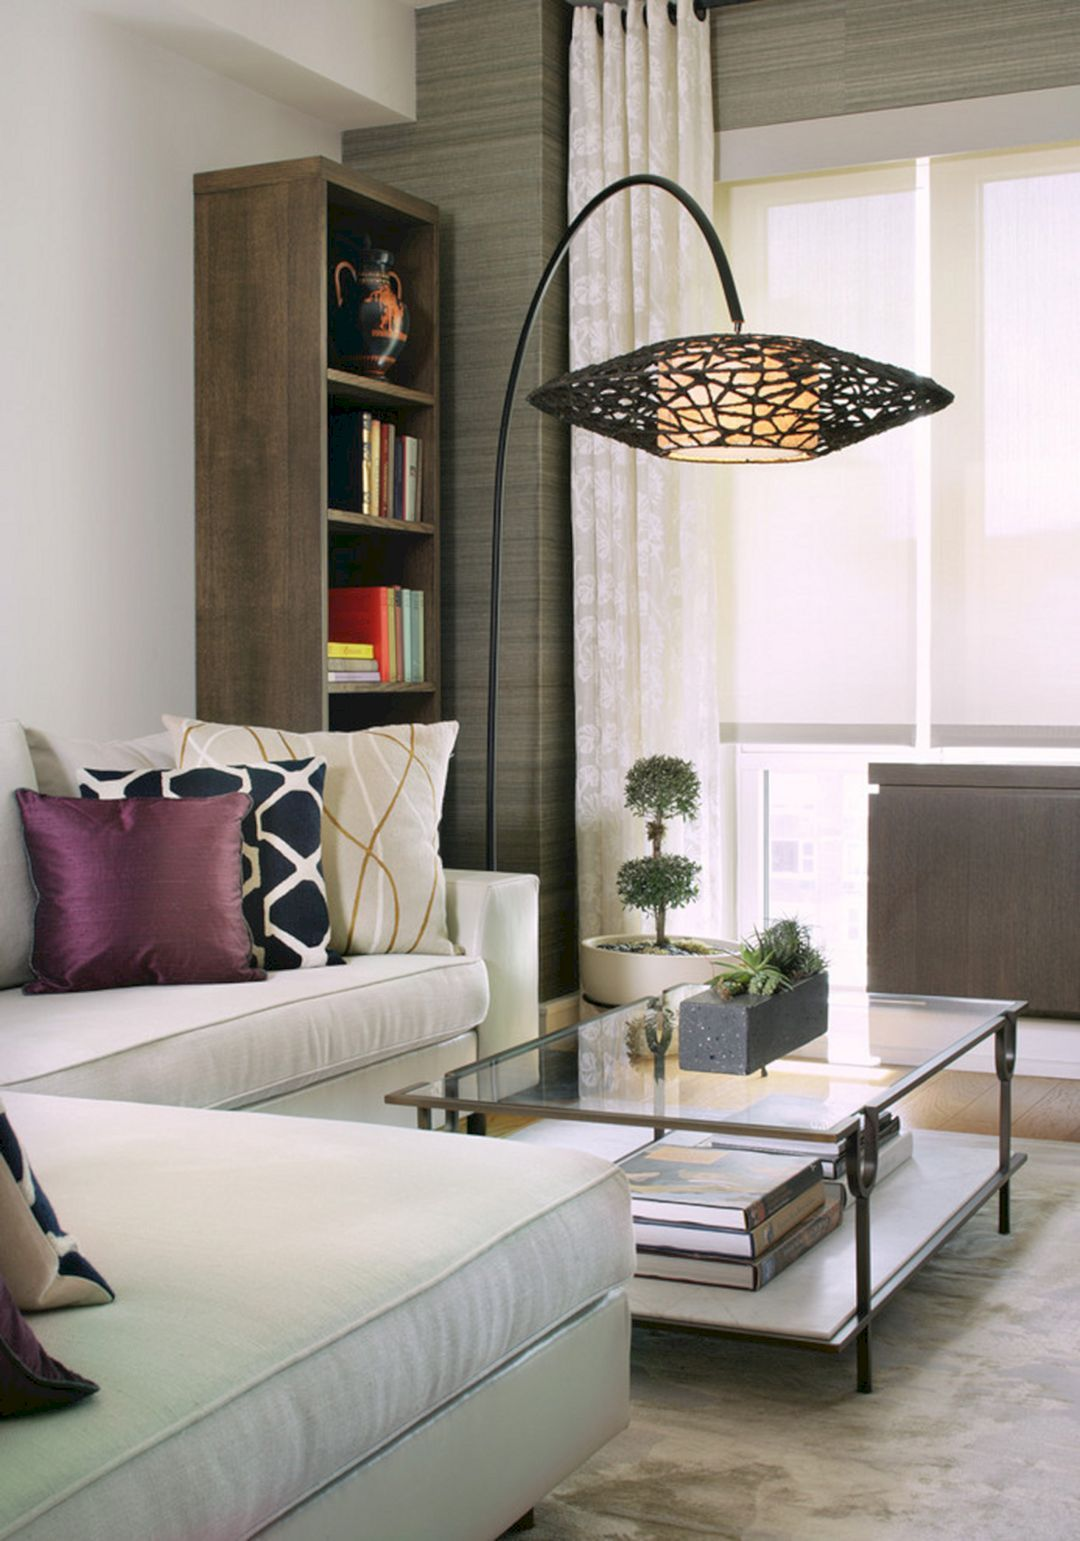 25 Awesome Living Room Lamp Ideas That Will Make You Comfort